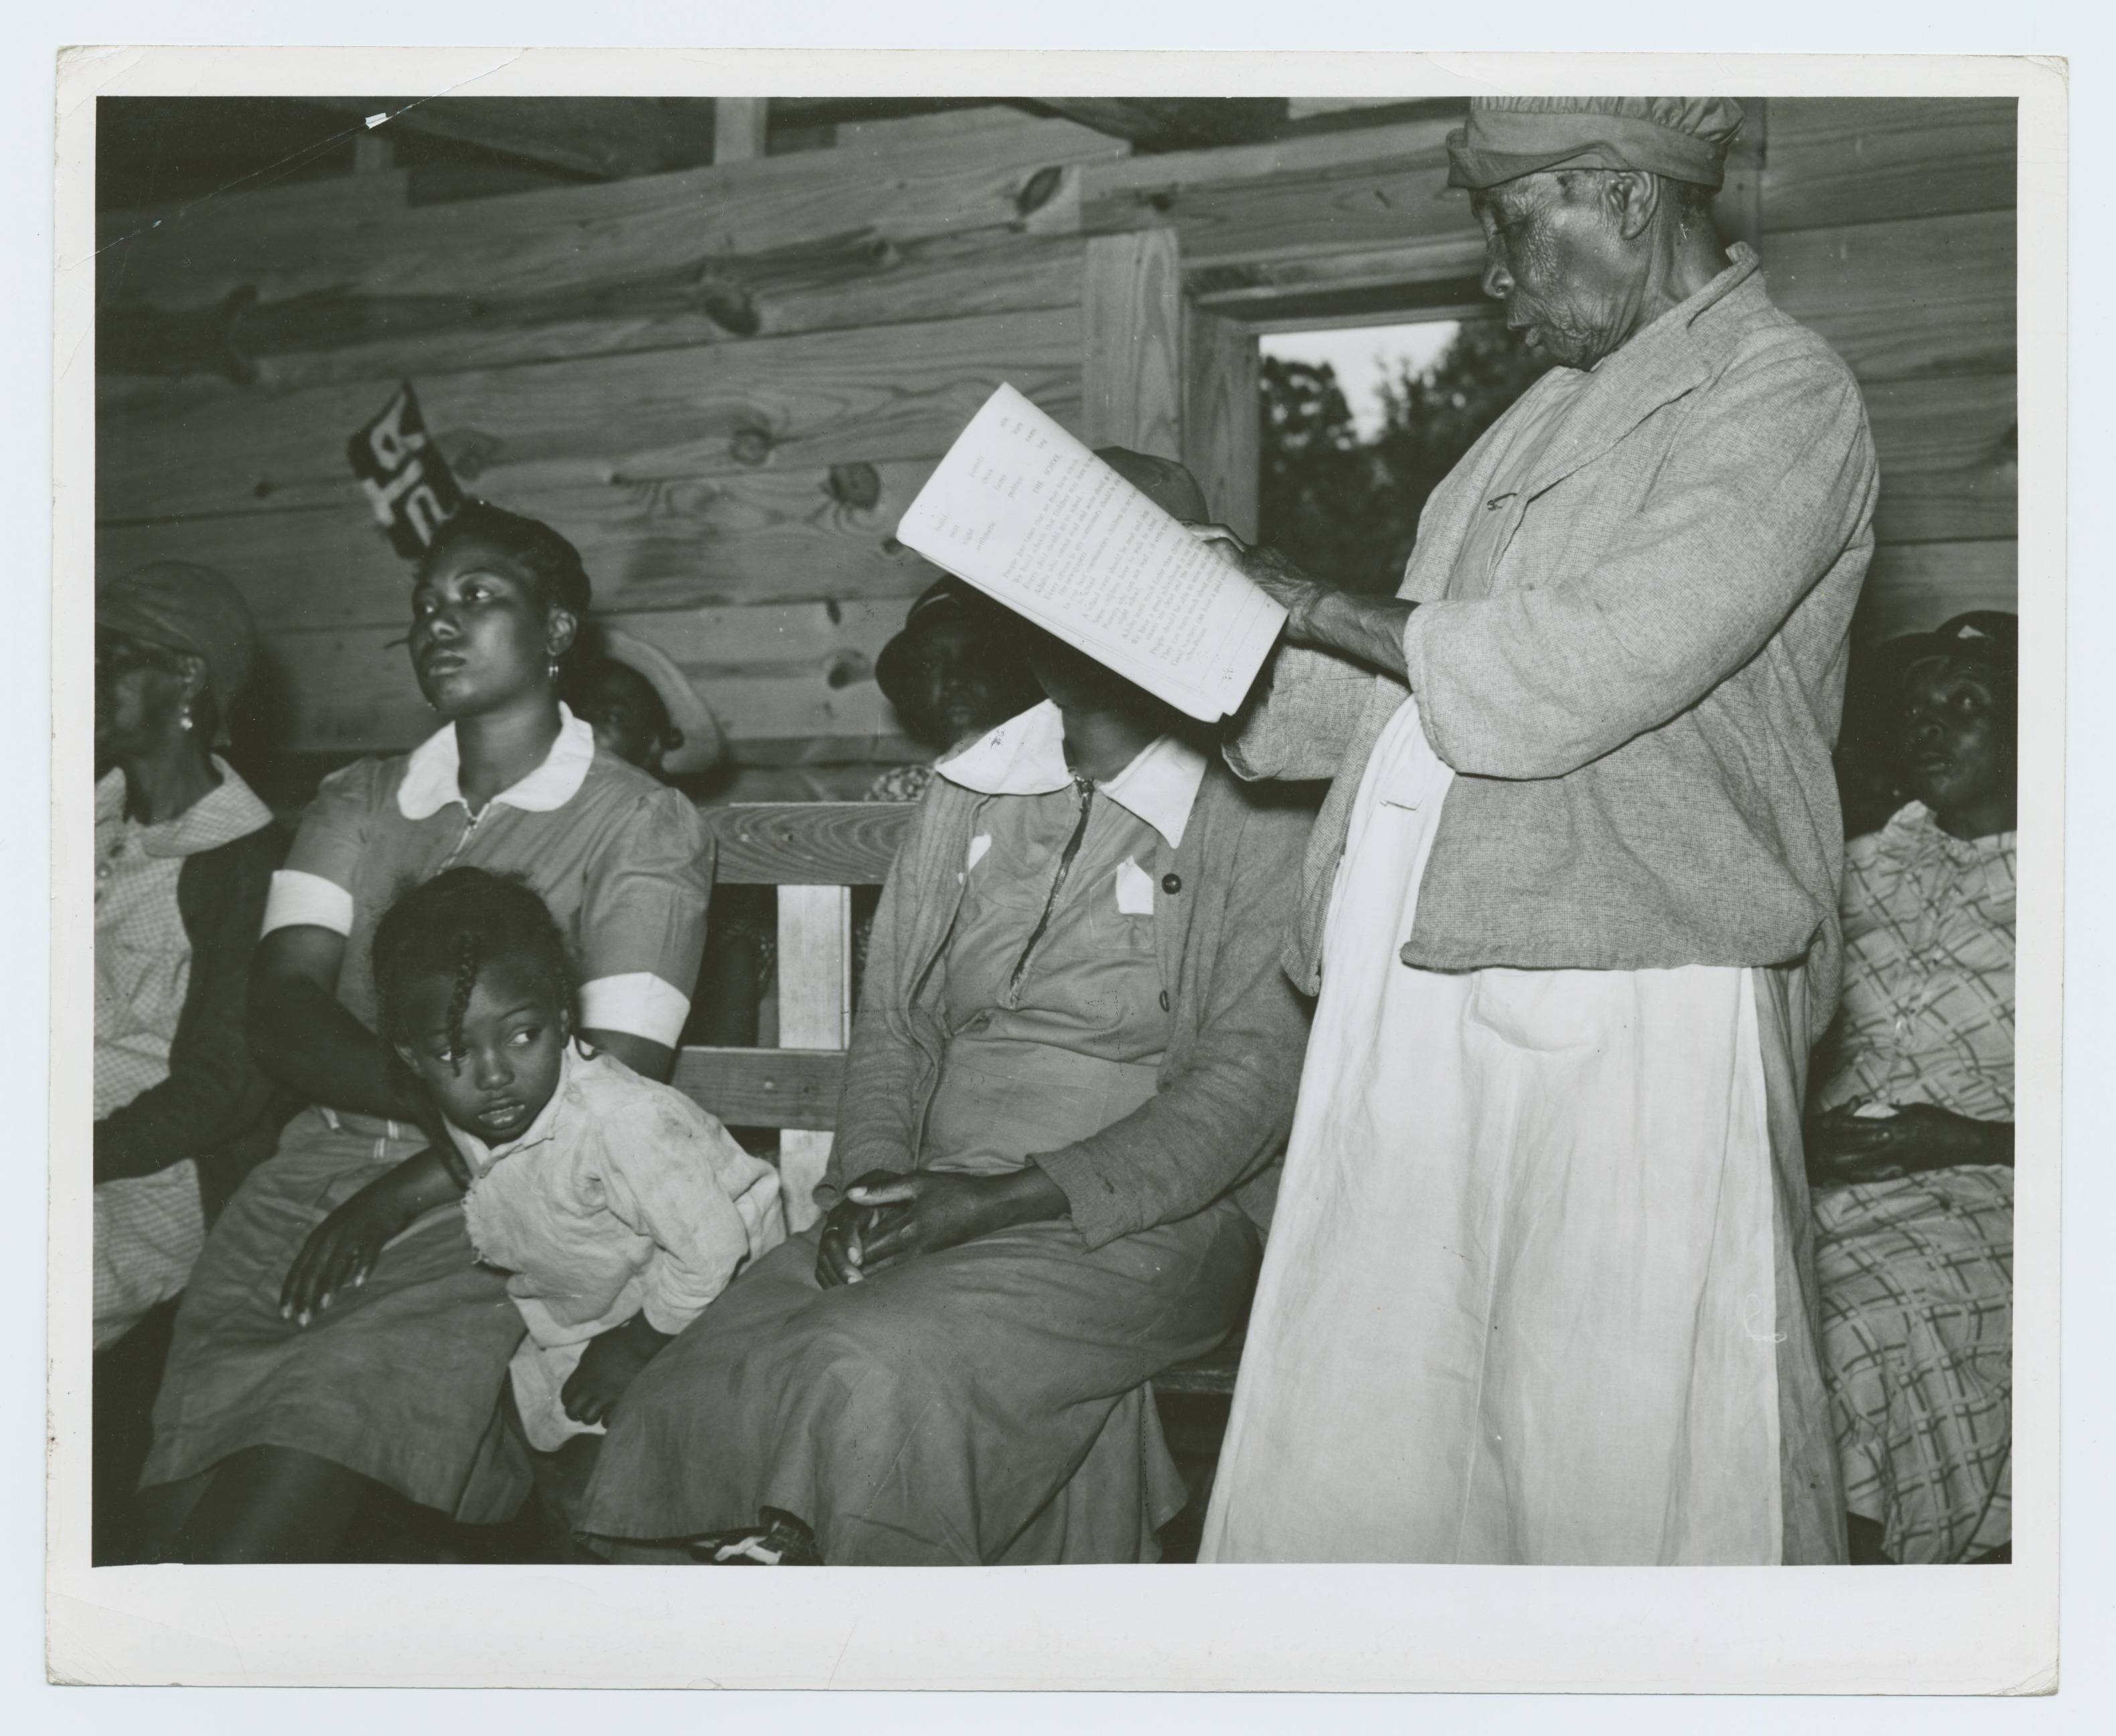 Star pupil, 82 years old, reading her lesson in adult class, Gee's Bend, Alabama, May 1939 - Marion Post Wolcott